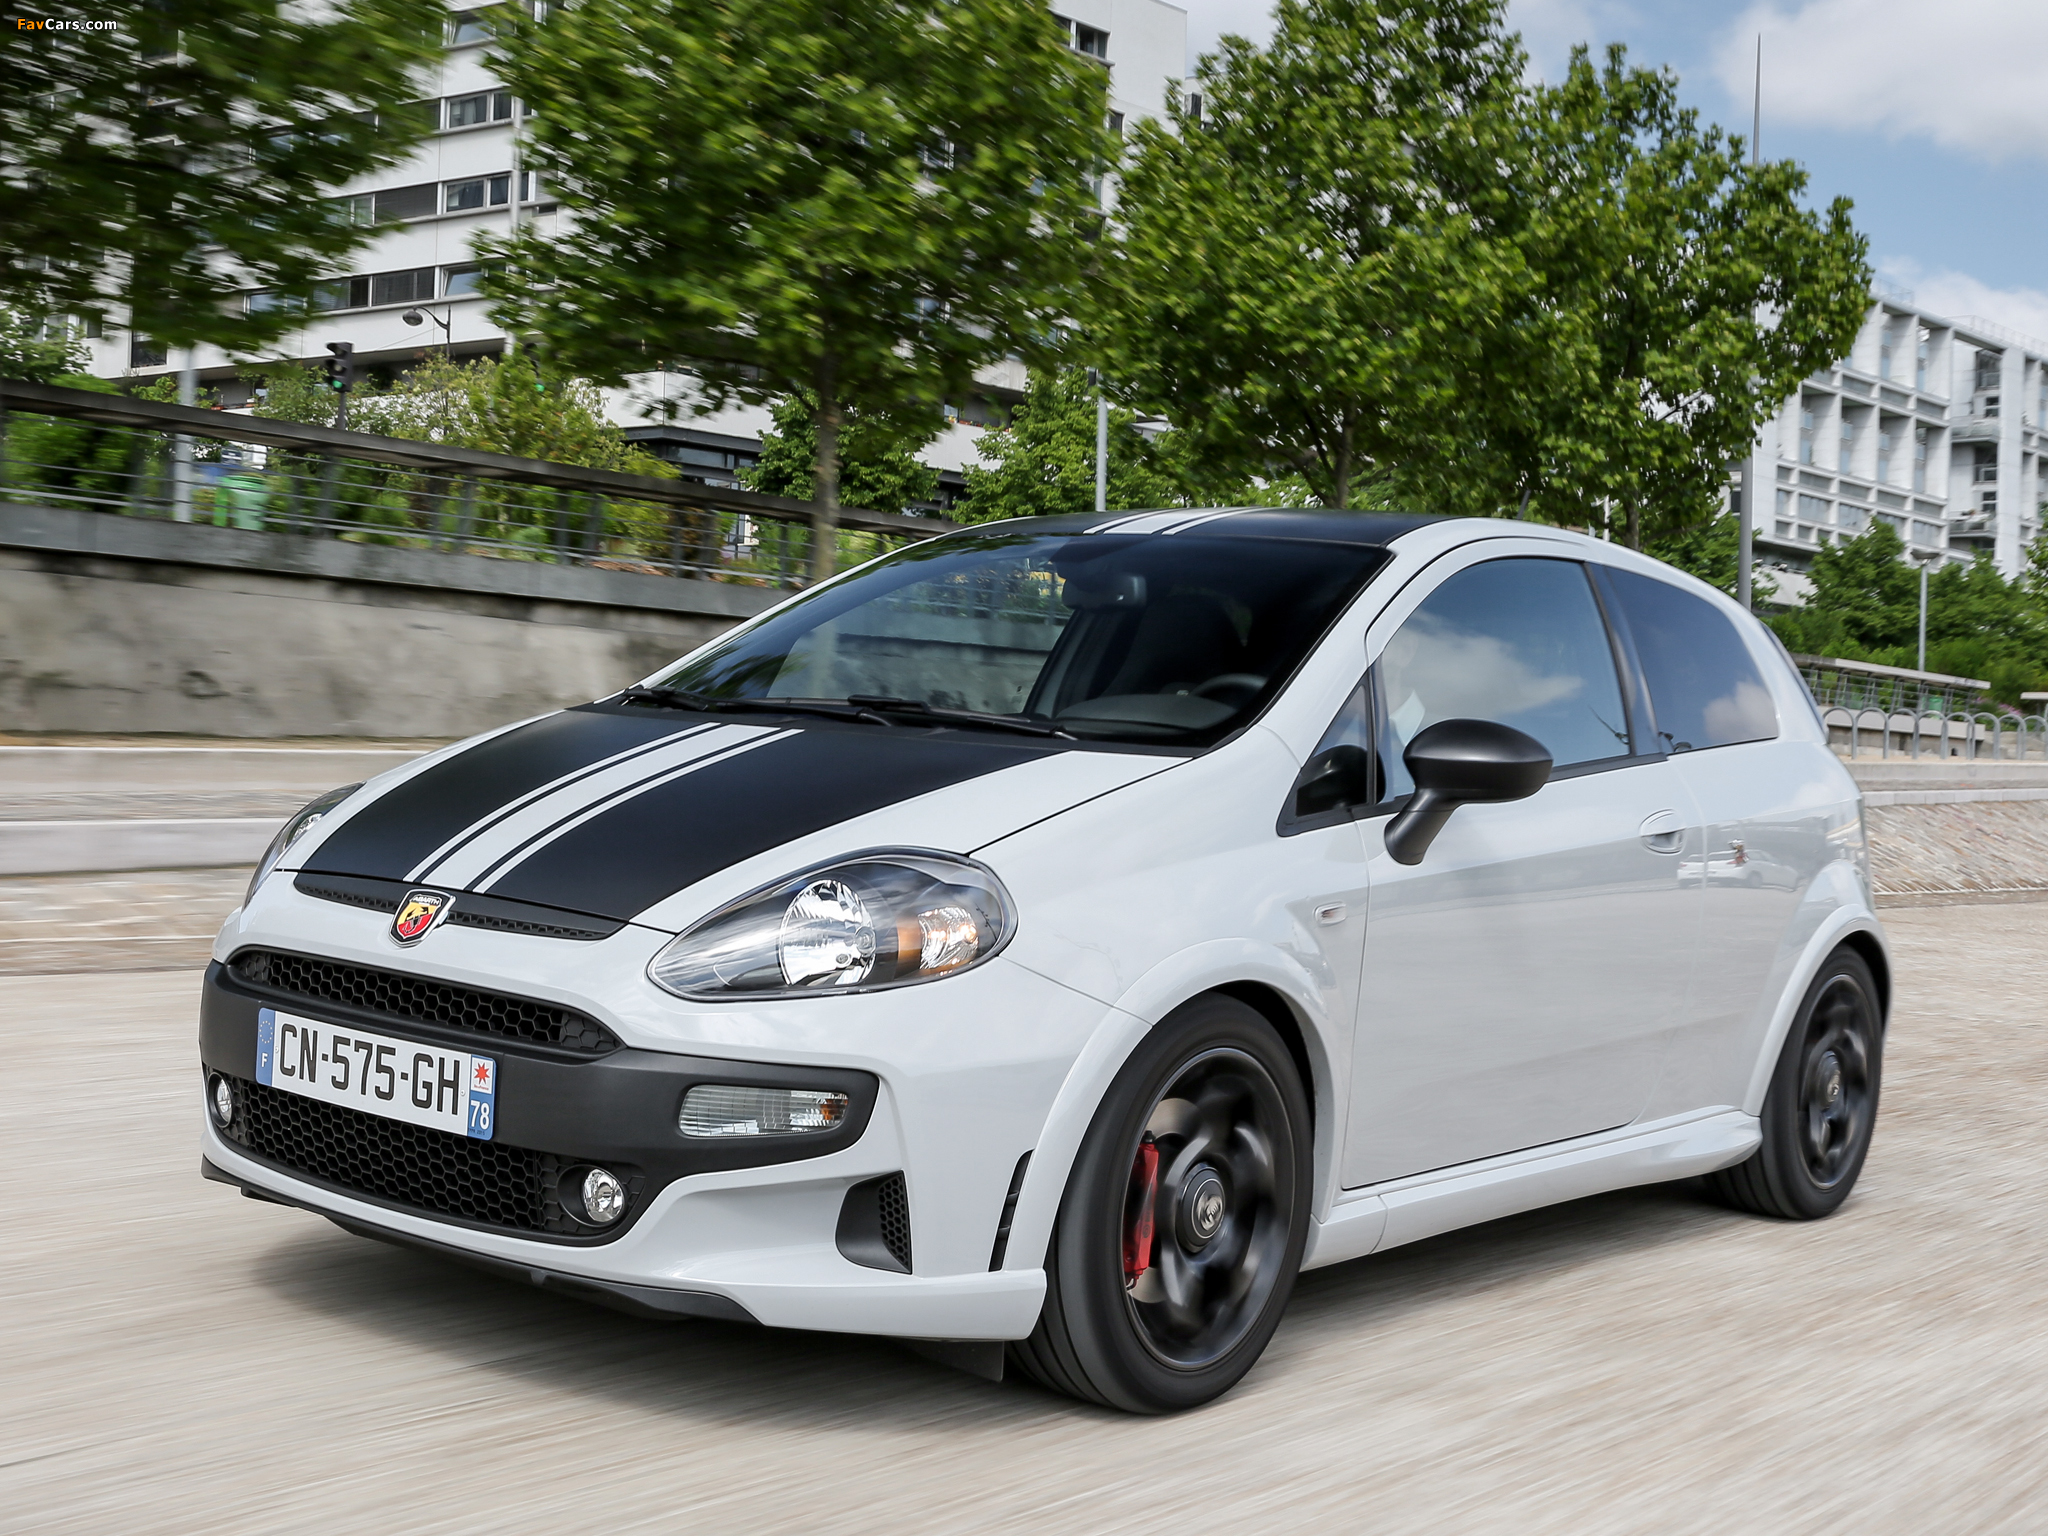 Abarth Punto SuperSport 199 (2012) wallpapers (2048 x 1536)